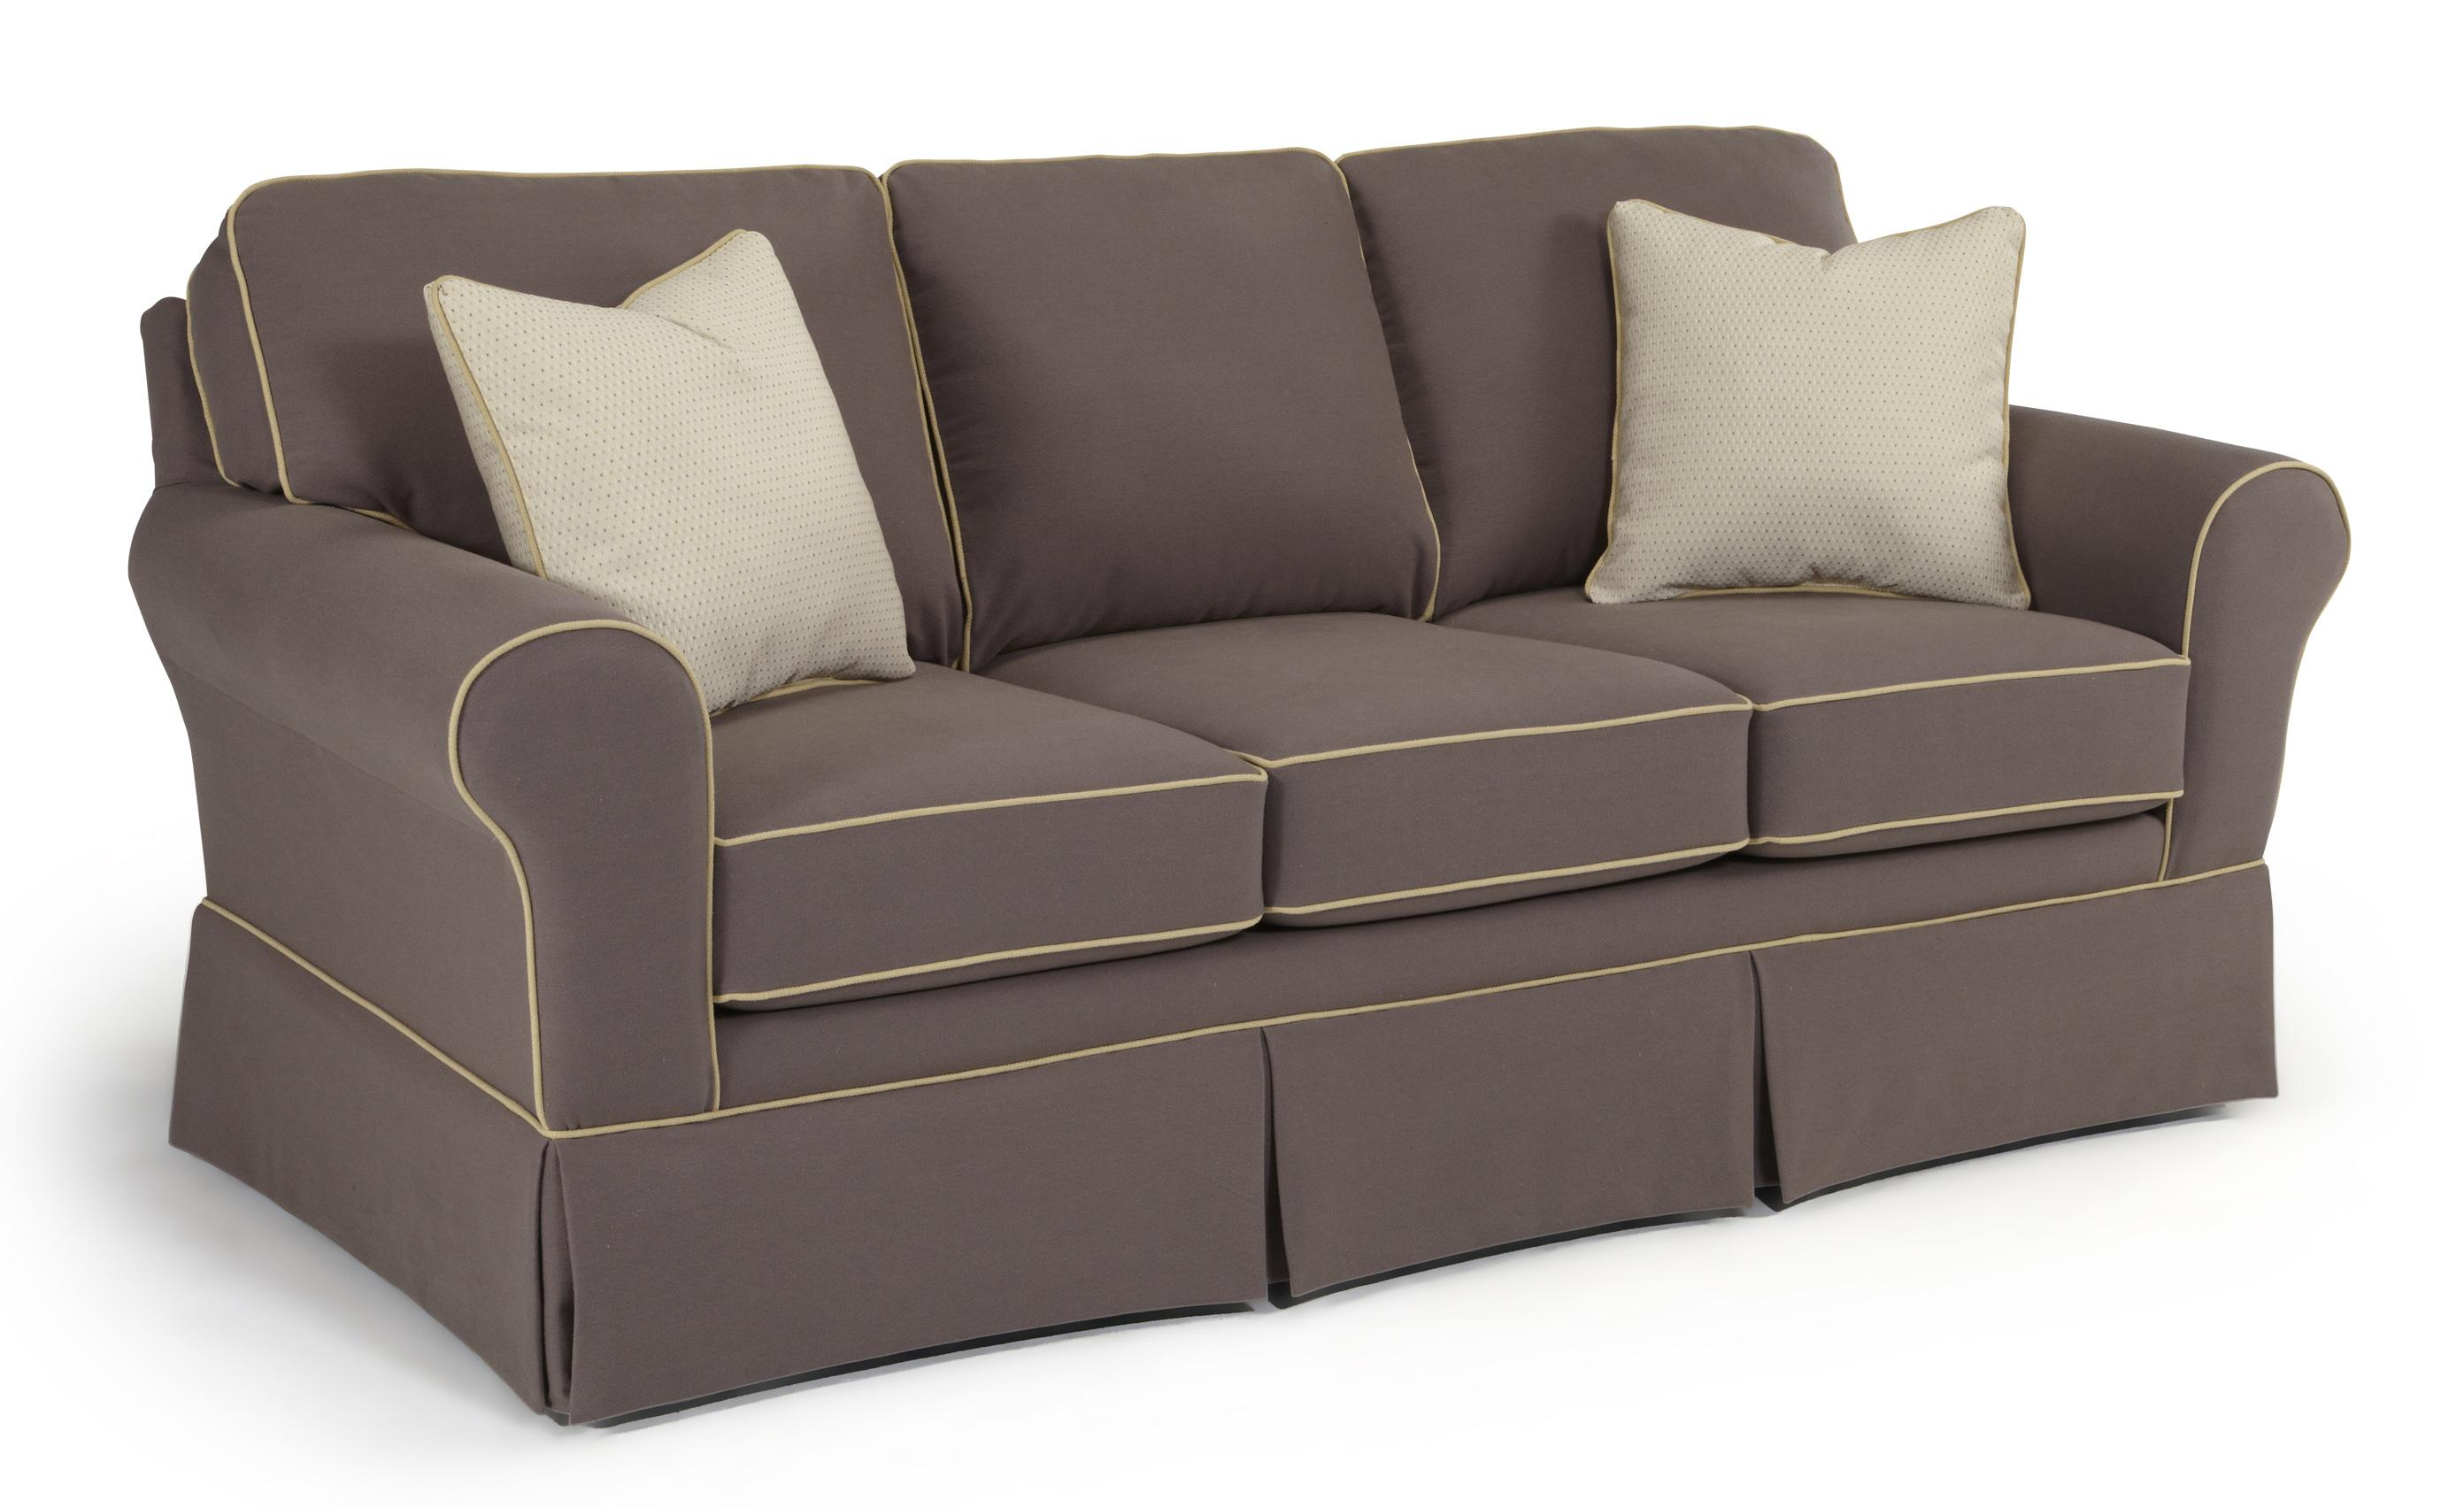 Annabel customizable traditional sofa with rolled arms and for Traditional couches